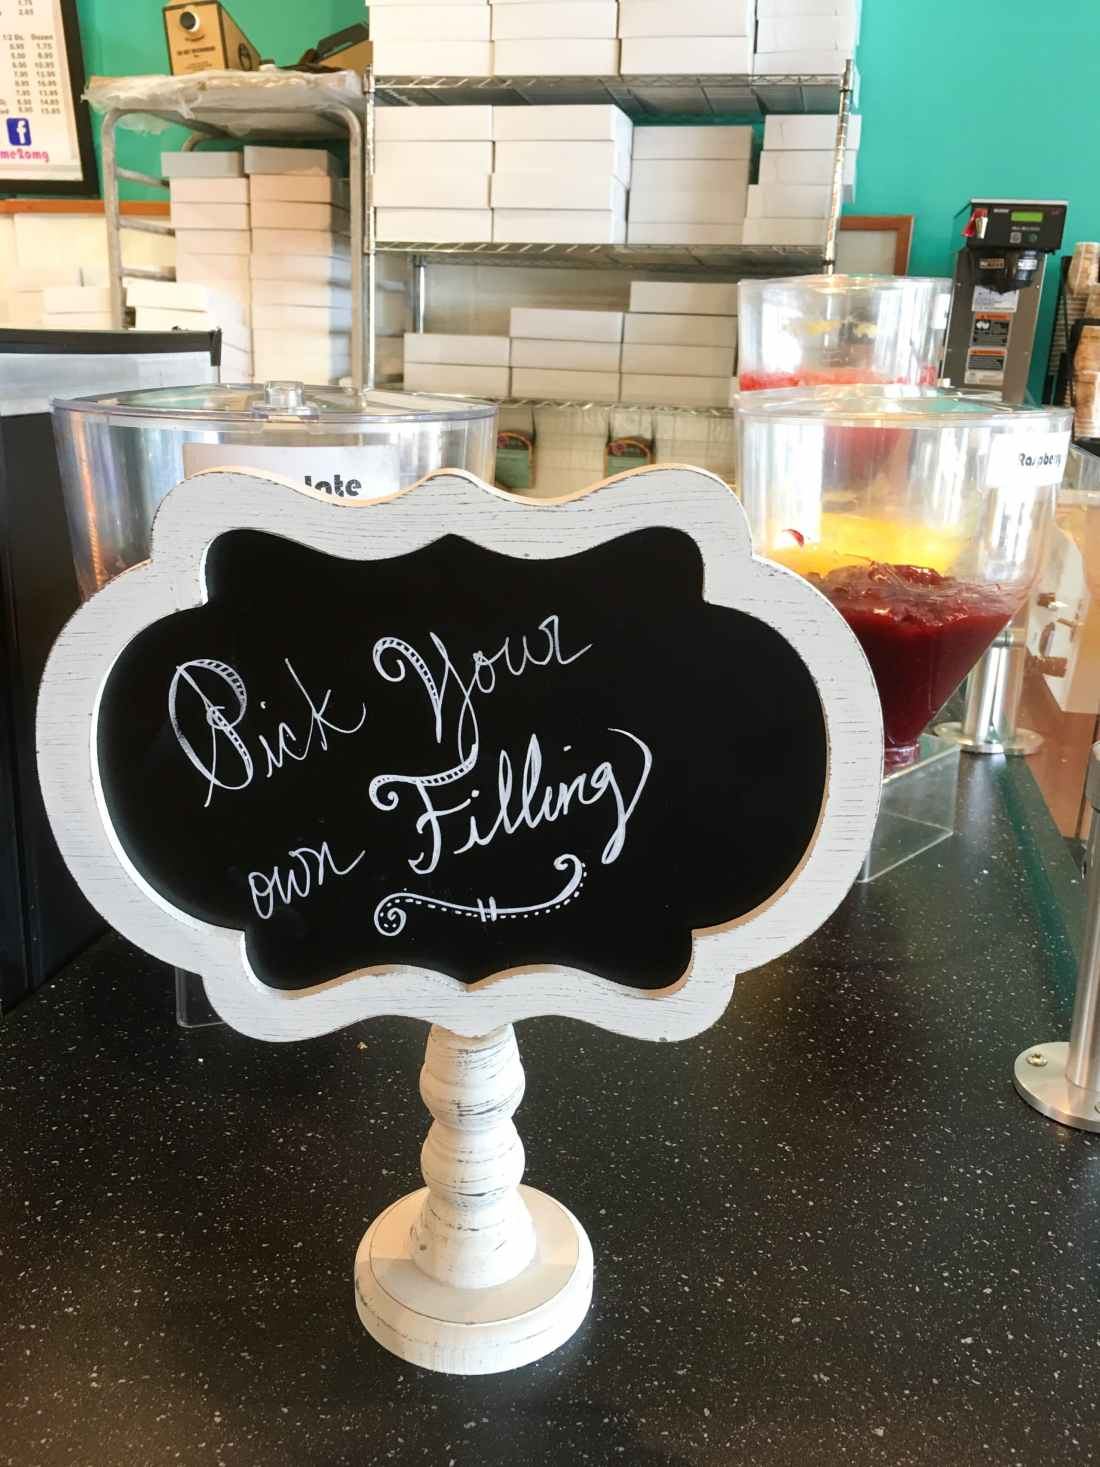 OMG Donuts and Bakery Pick You Filling Sign. OMG Donuts and Bakery Travel Review via - JaysSweetNSourLife.com